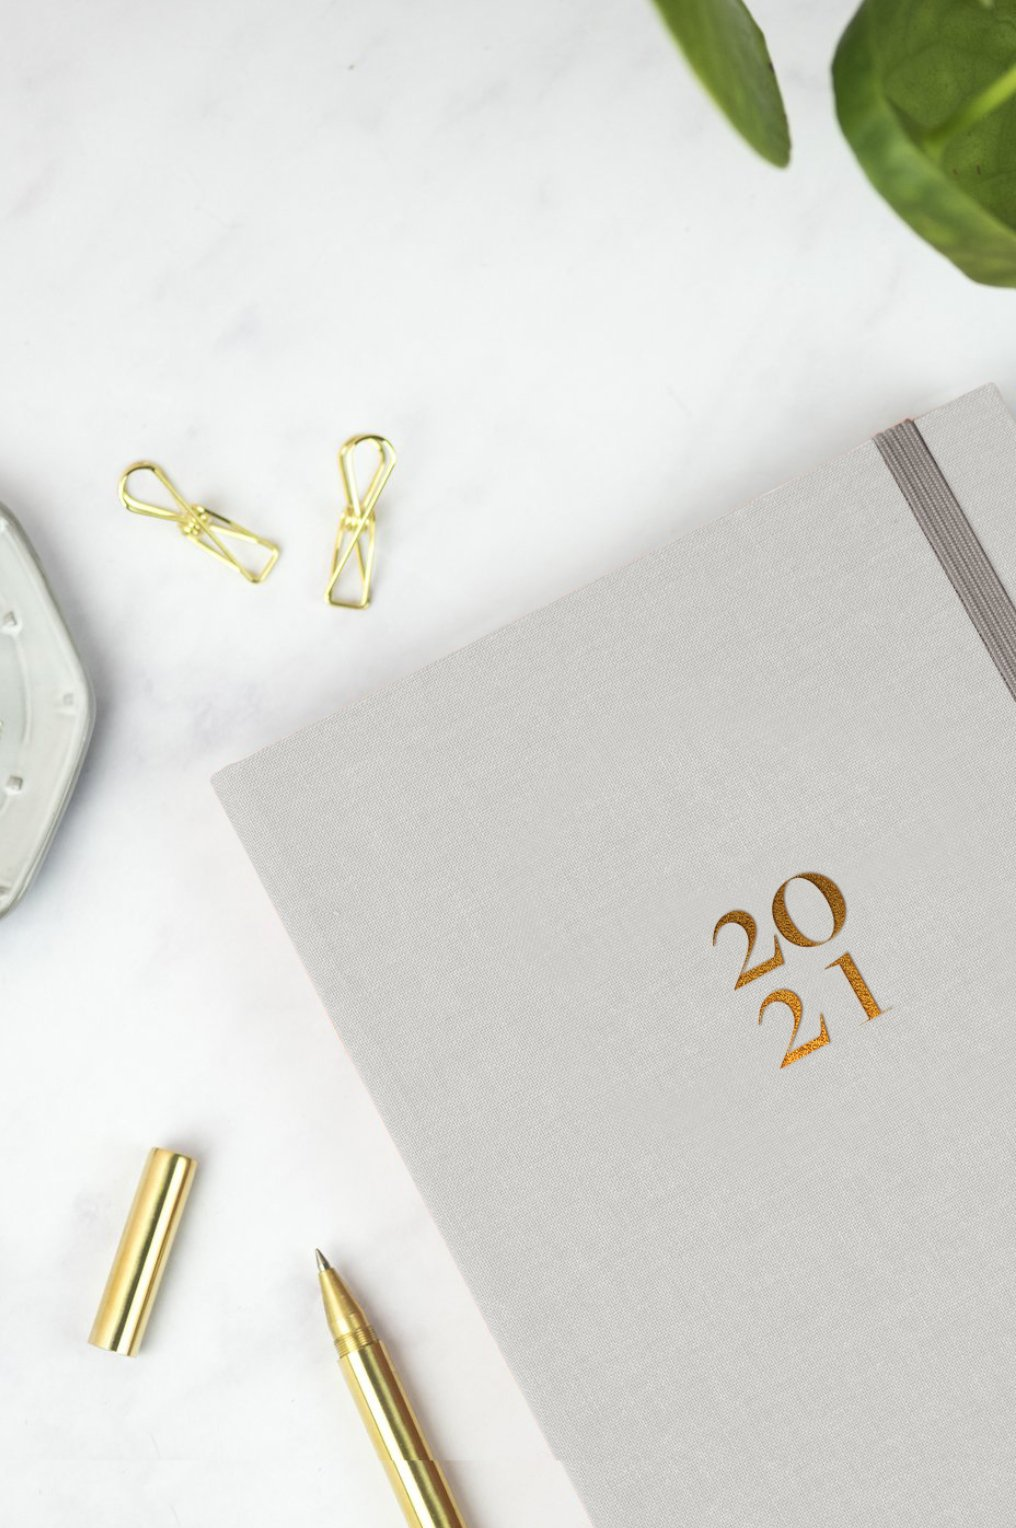 WIN A PONDERLILY®  PLANNER PLUS A SELECTION OF REST & RECHARGE SKIN CARE